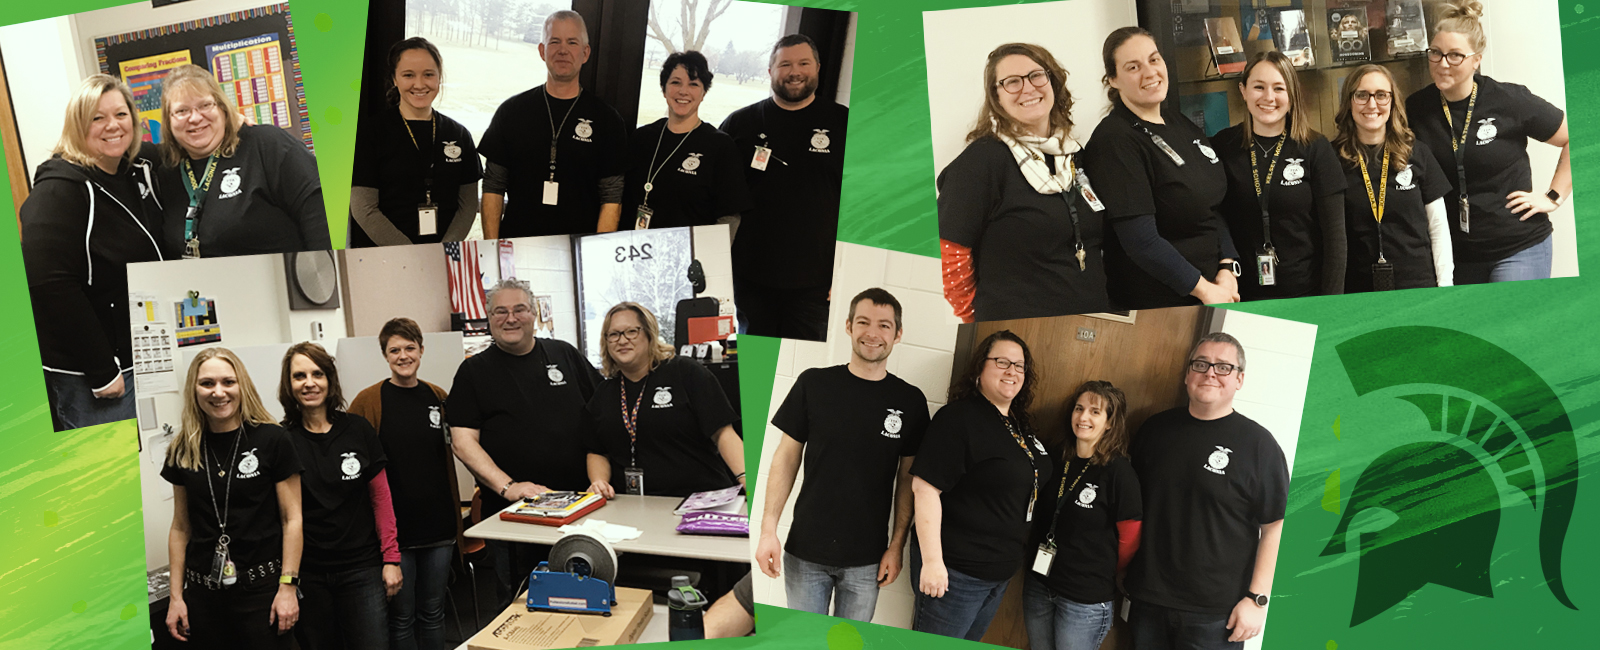 Lconia Staff in black helper shirts